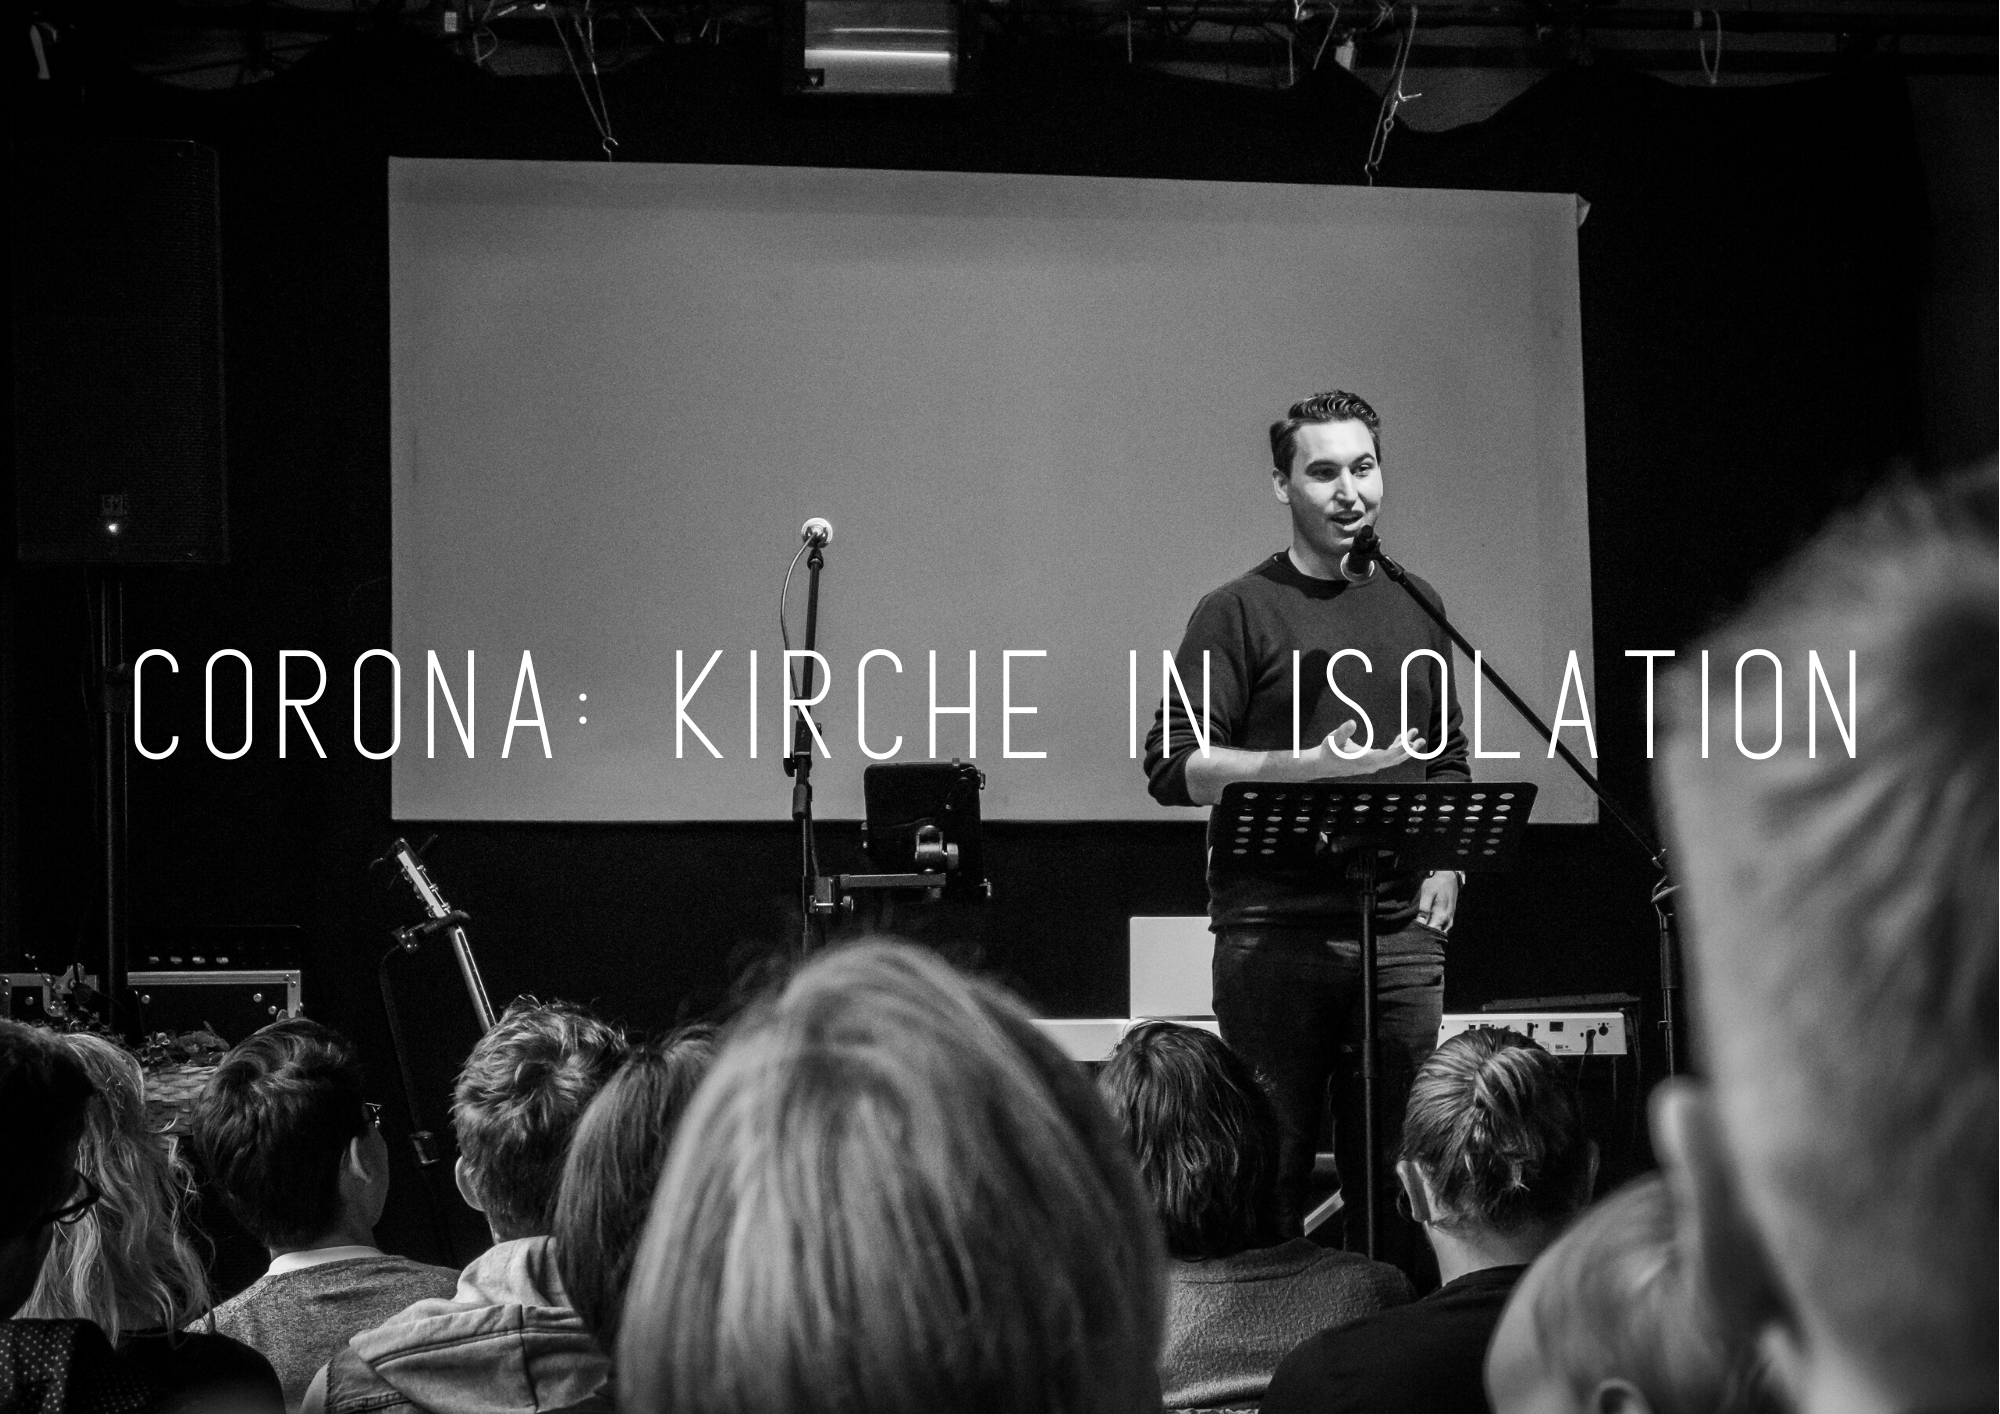 Corona: Kirche in Isolation